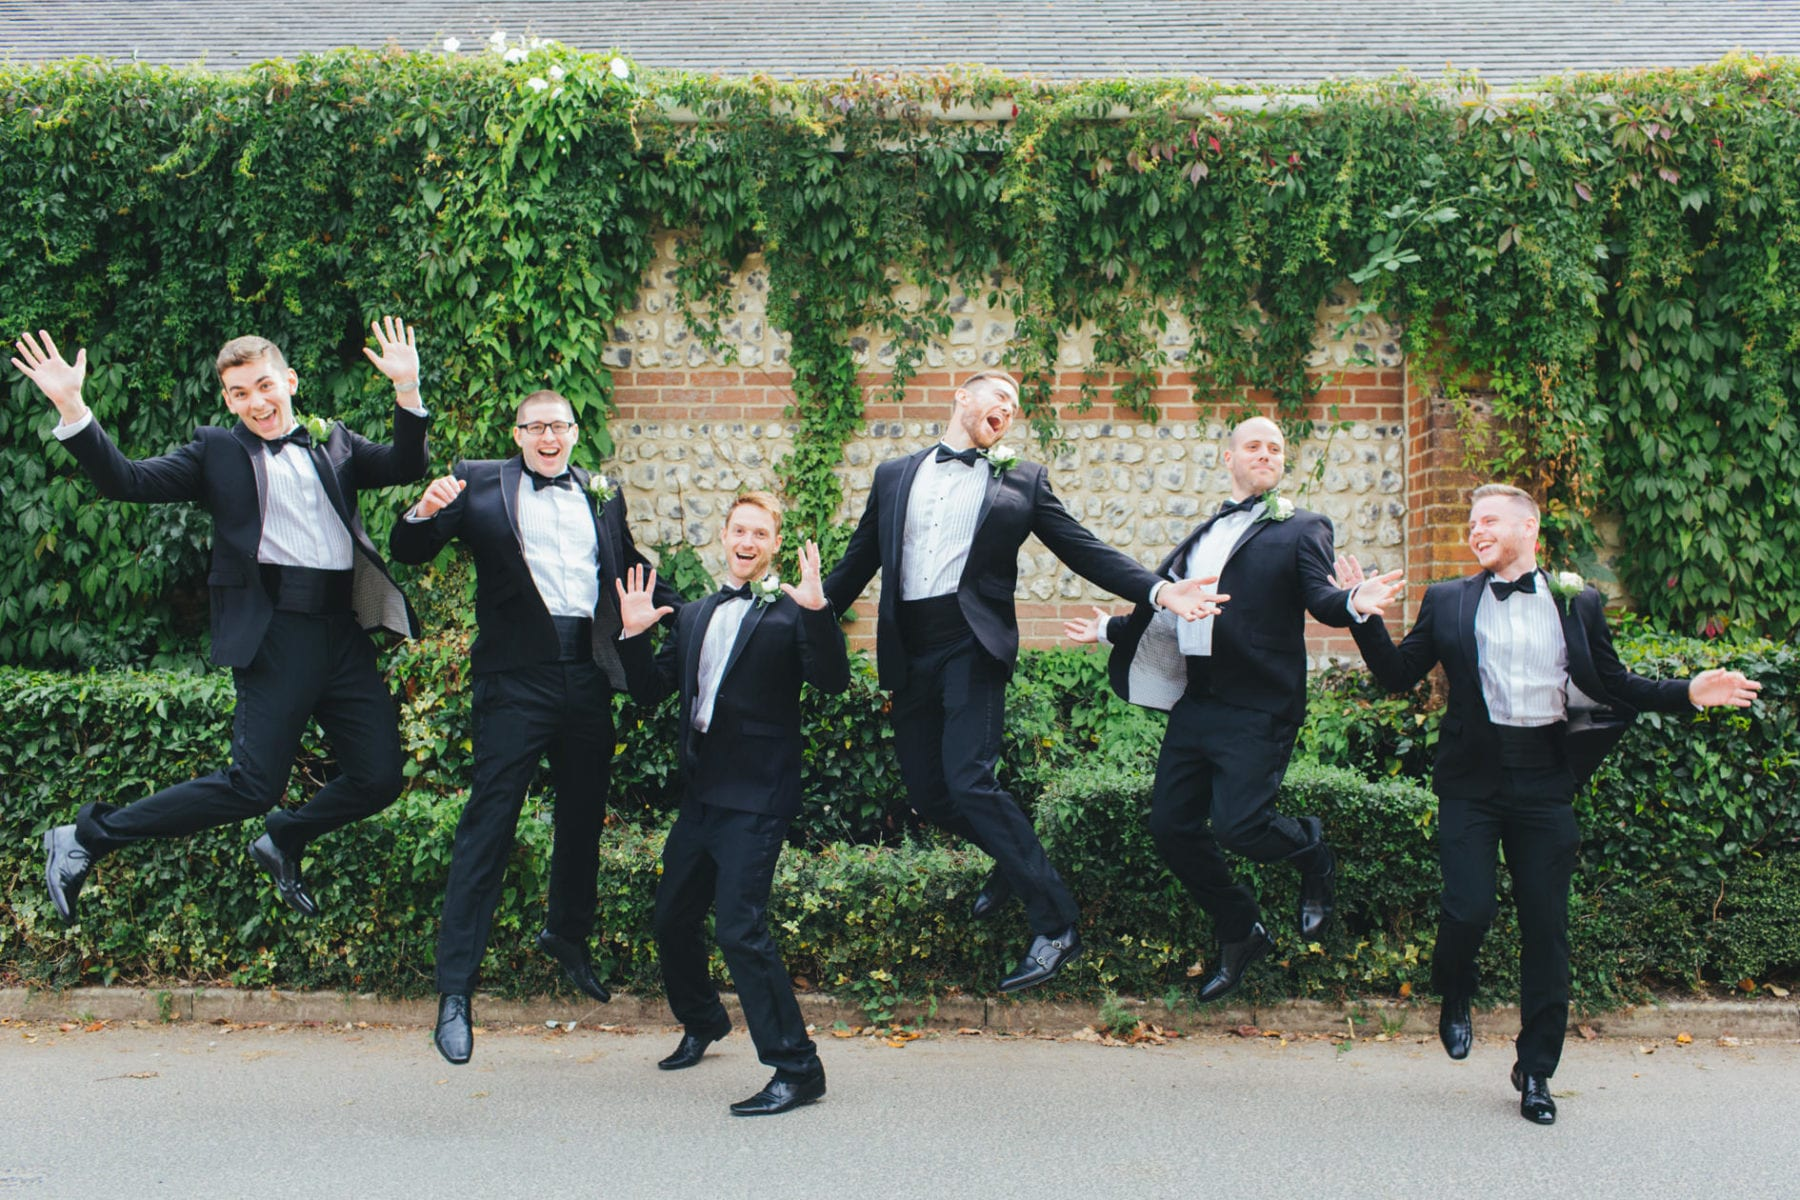 wedding group photos - relaxed, natural and fun!